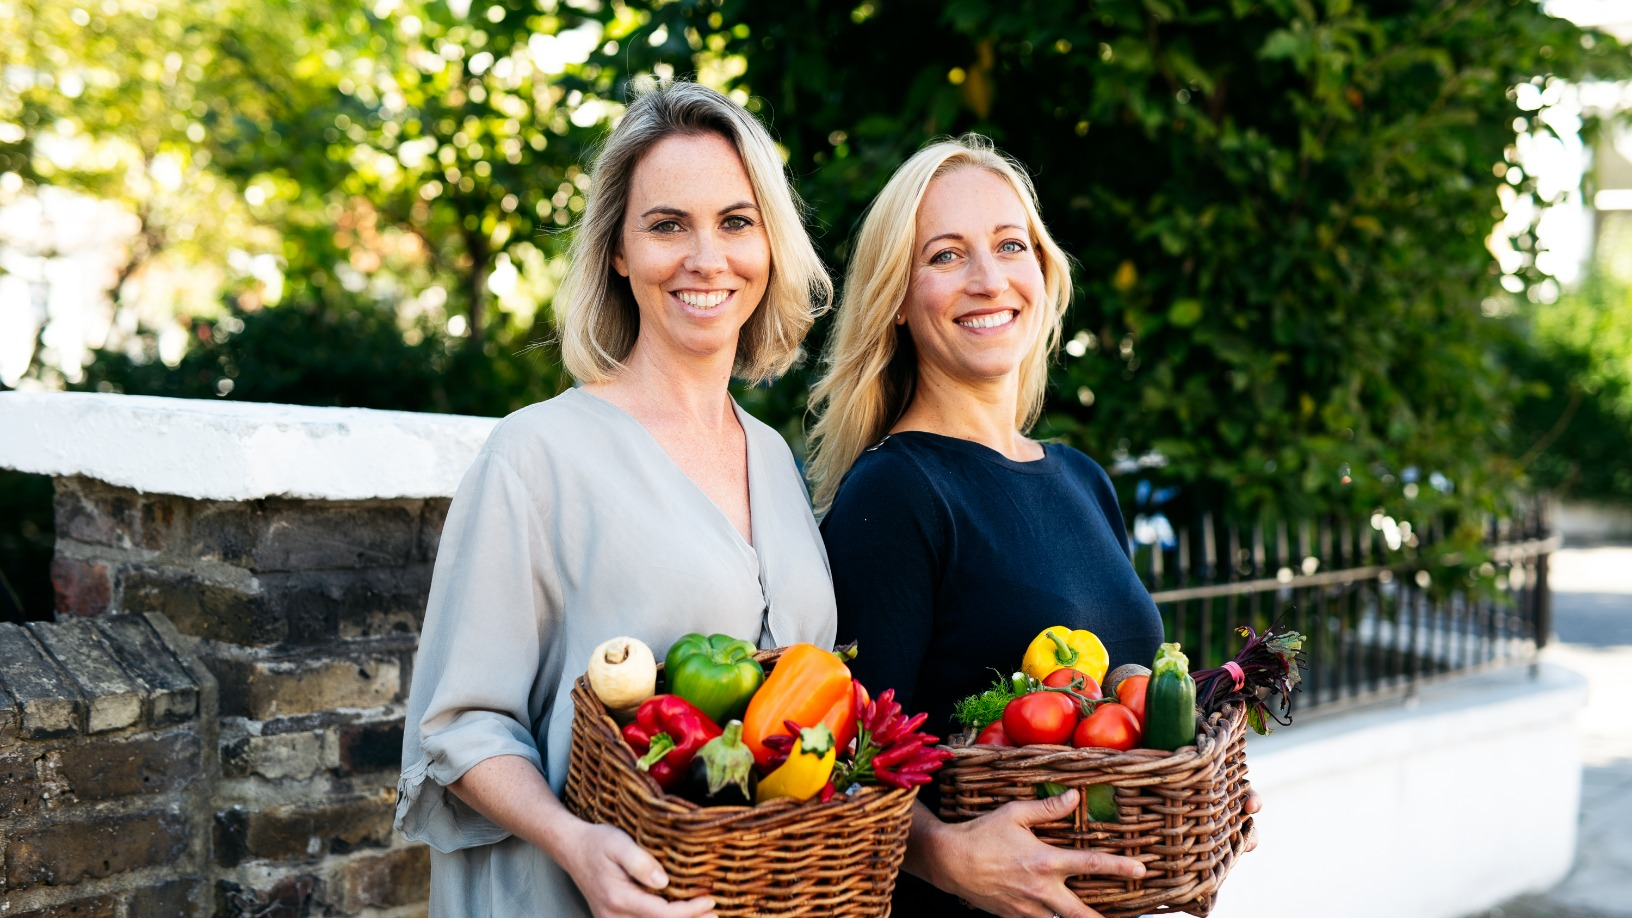 OLIO: Zero food waste app expands with new product categories, going global